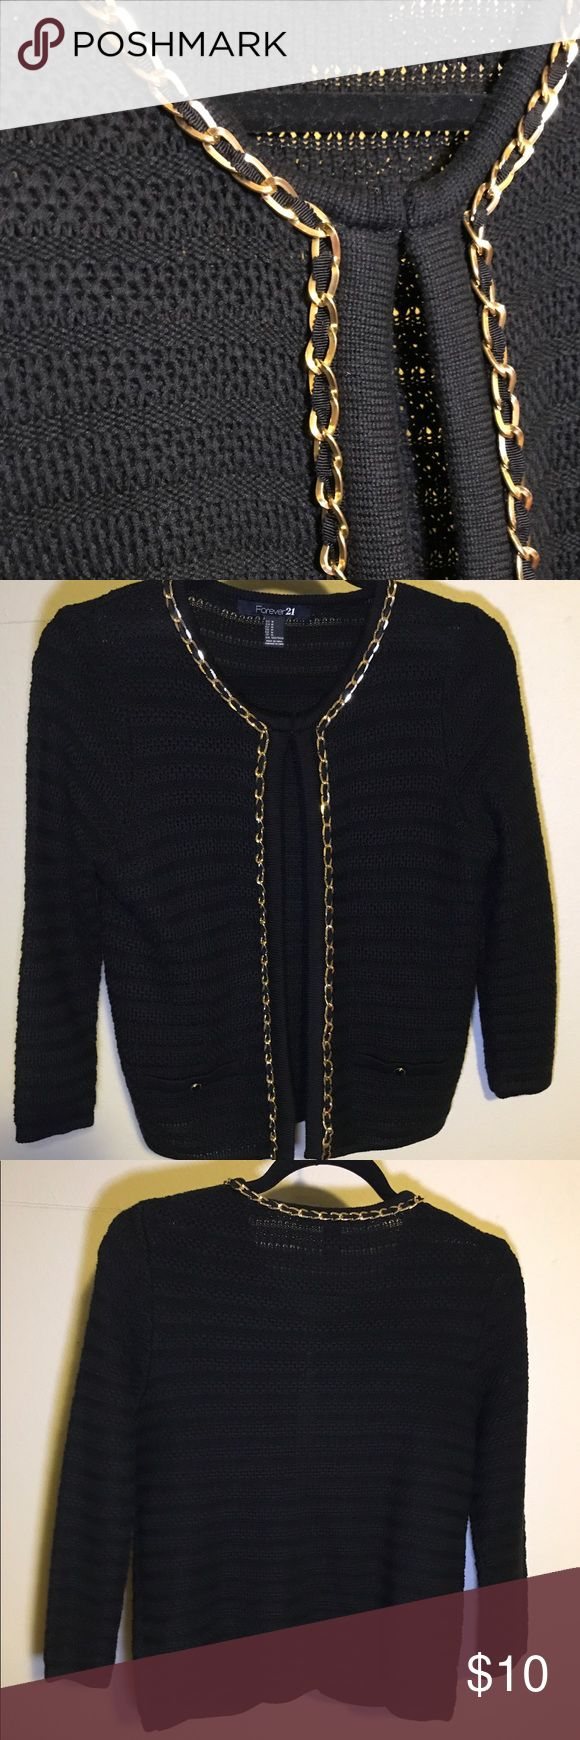 Black/Gold Cardigan - Forever 21 Excellent Quality, Great Condition! Metal chain has nice weight to it. Worn only a couple times. Bundle at least 3 items for 15% discount! Forever 21 Sweaters Cardigans